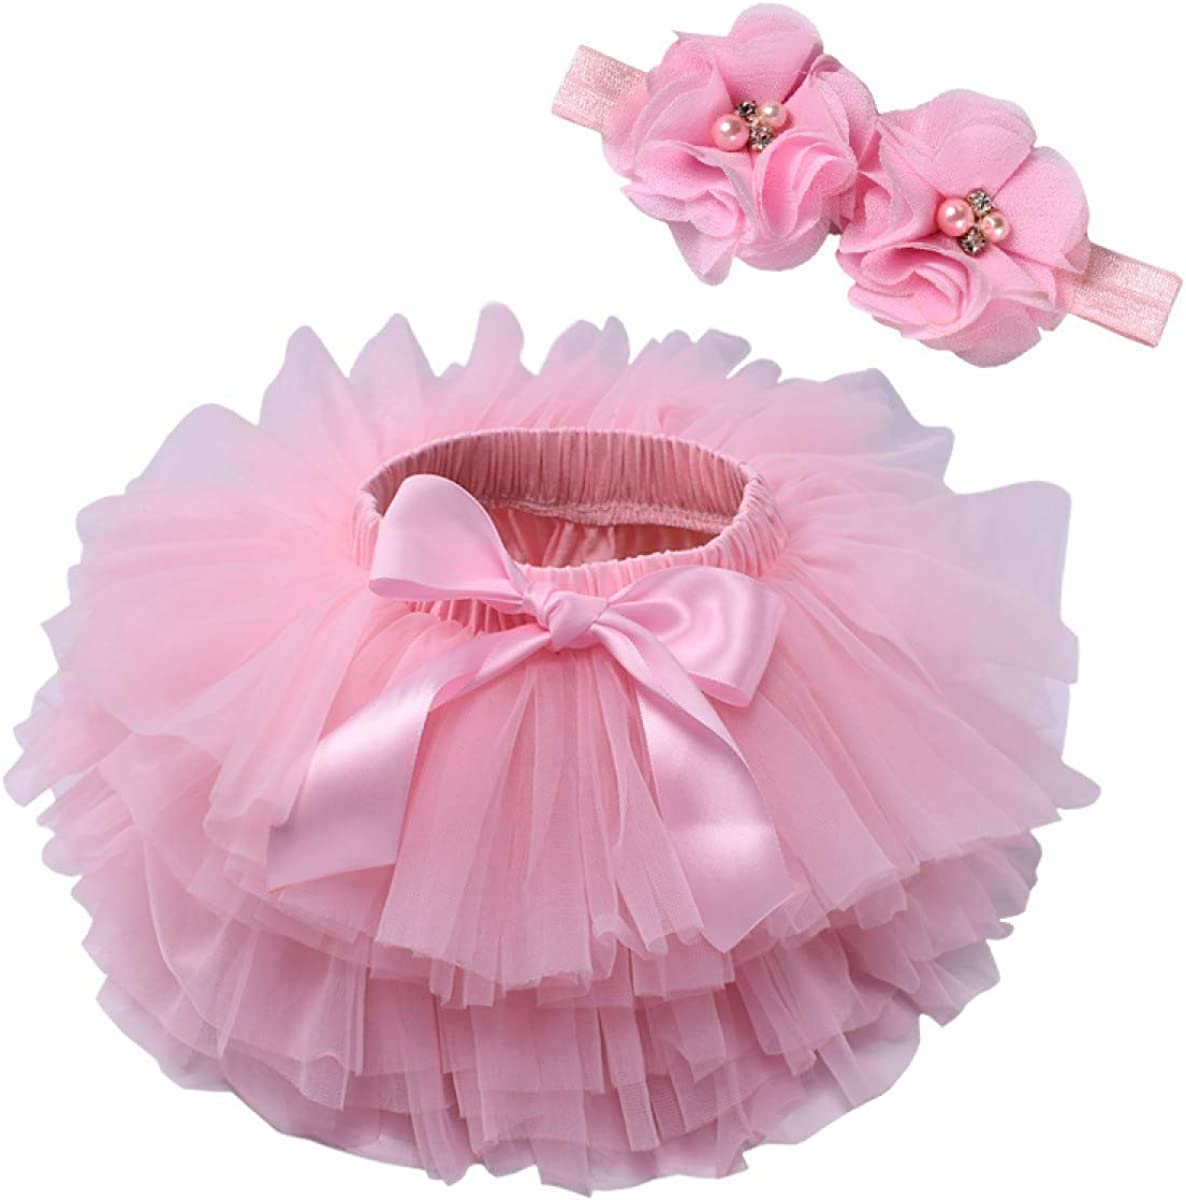 MIKI SHOP Baby Girl Tutu Skirt 2pcs Tulle lace Bloomers Diaper Cover Newborn Infant Outfits Headband Flower